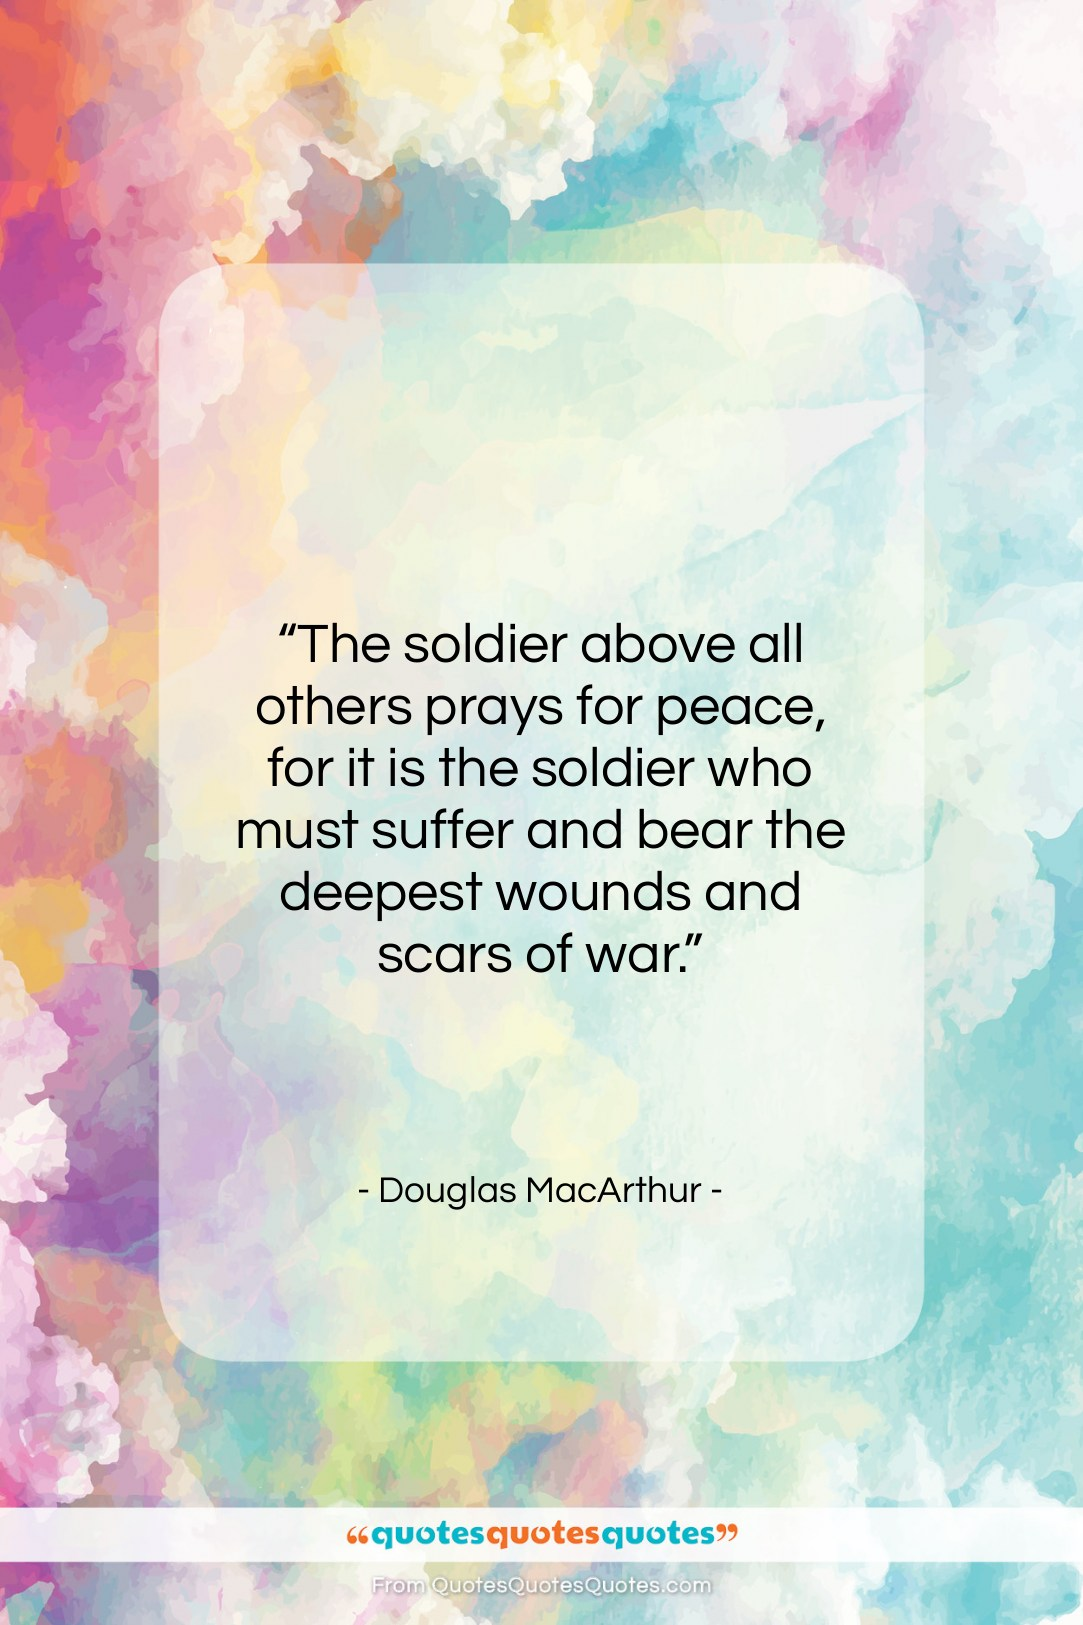 """Douglas MacArthur quote: """"The soldier above all others prays for…""""- at QuotesQuotesQuotes.com"""